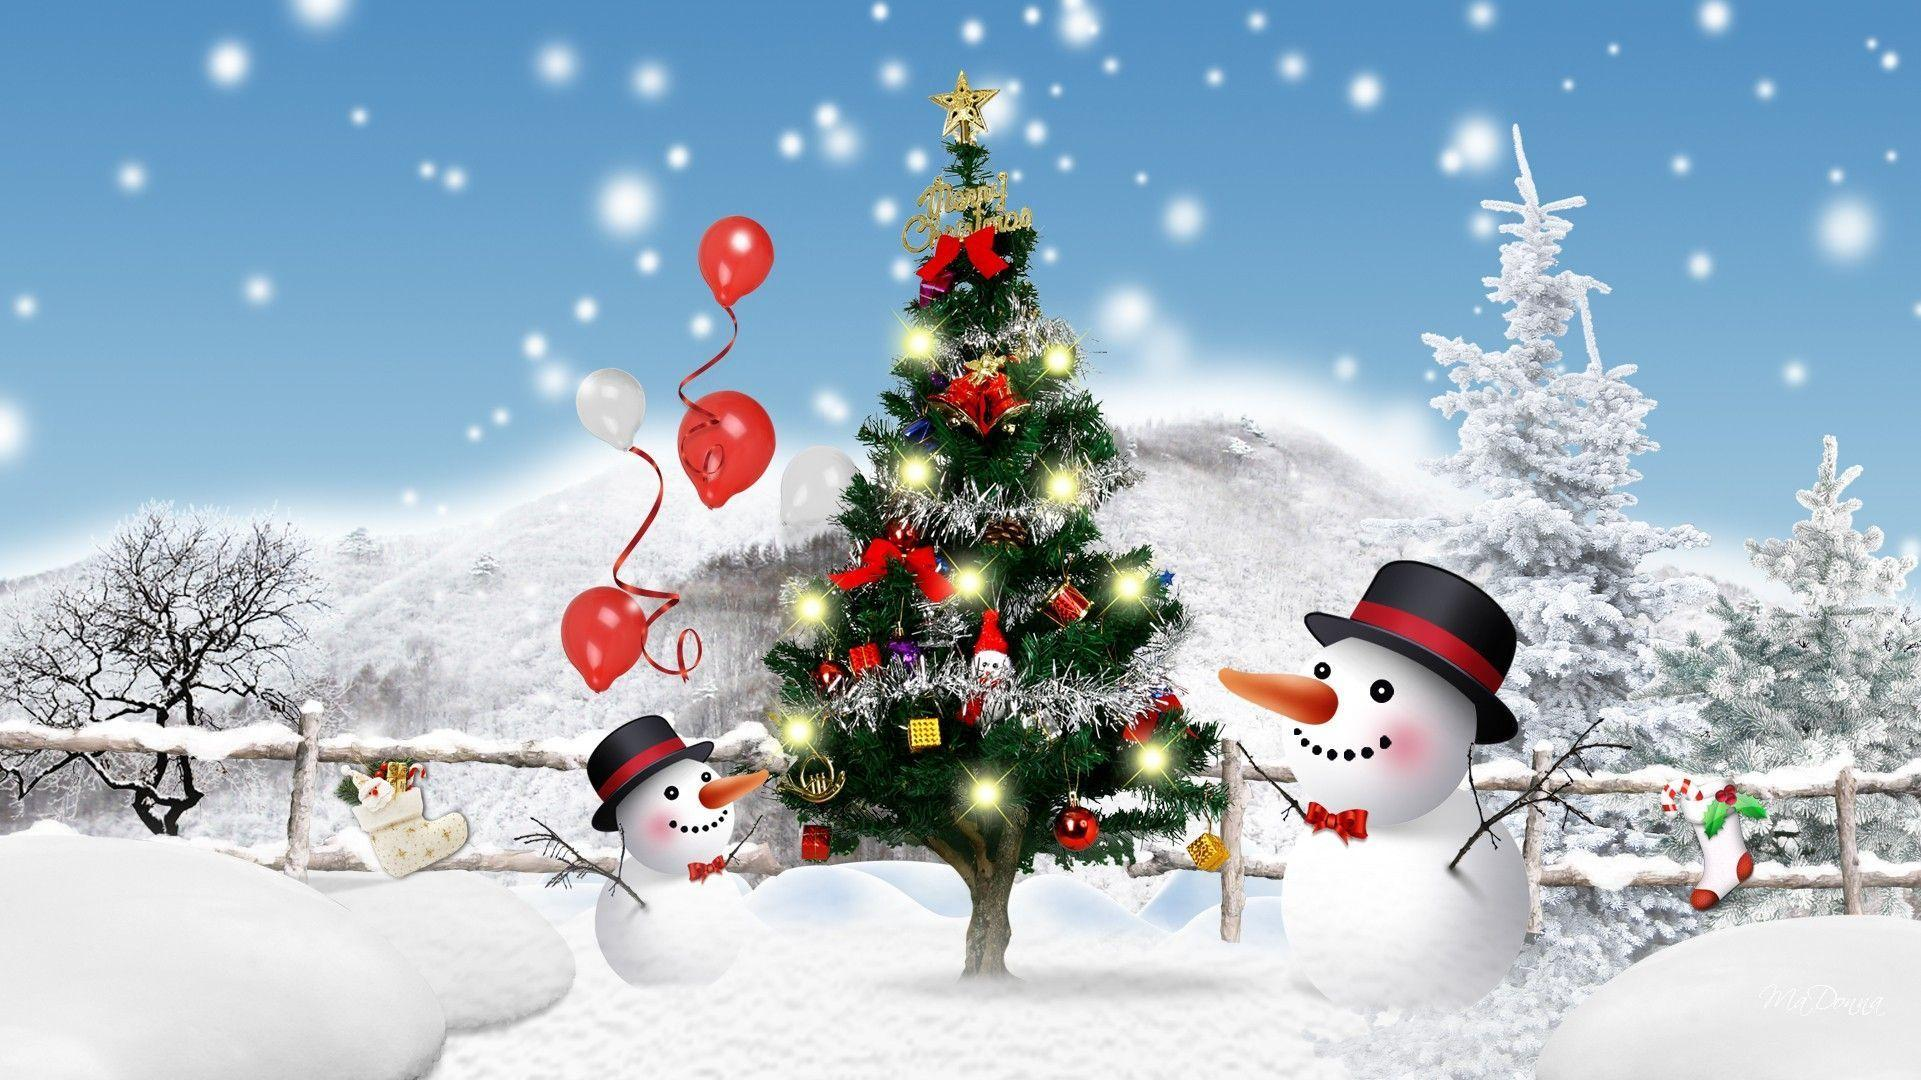 Christmas 3D Wallpapers - Wallpaper Cave